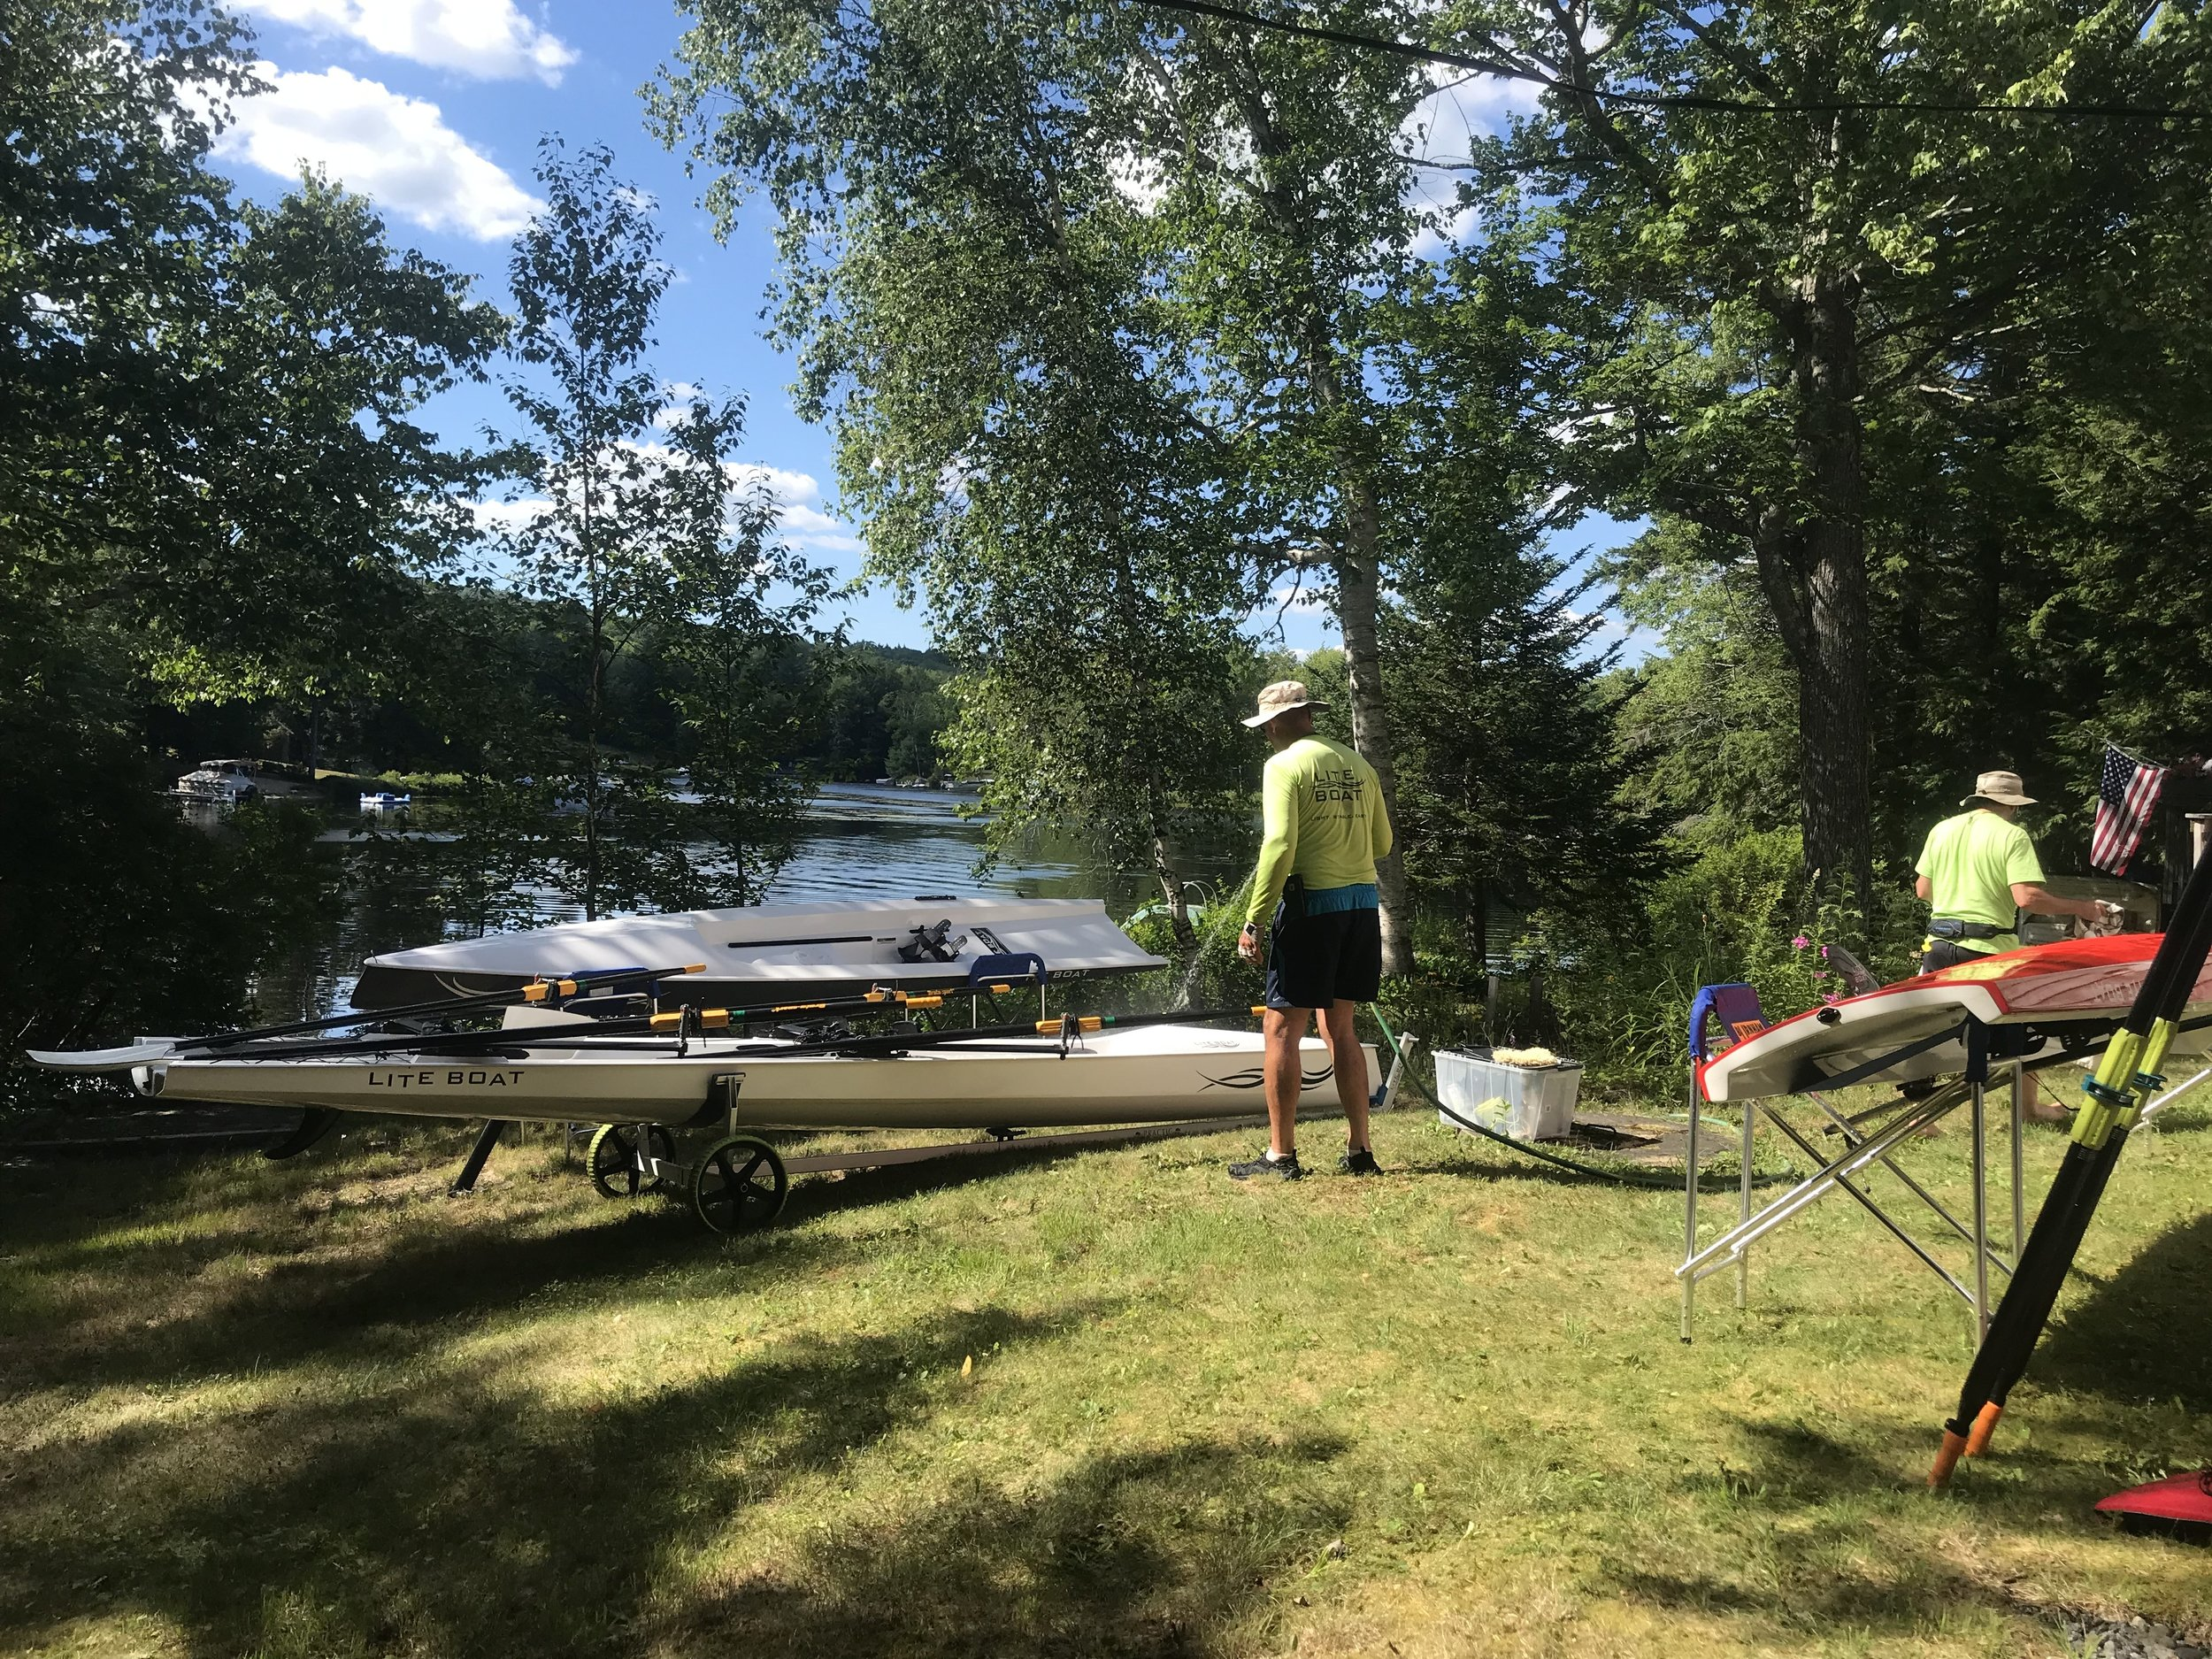 Highland Lake, NH - Cleaning up after a nice session rowing on Highland Lake in New Hampshire.